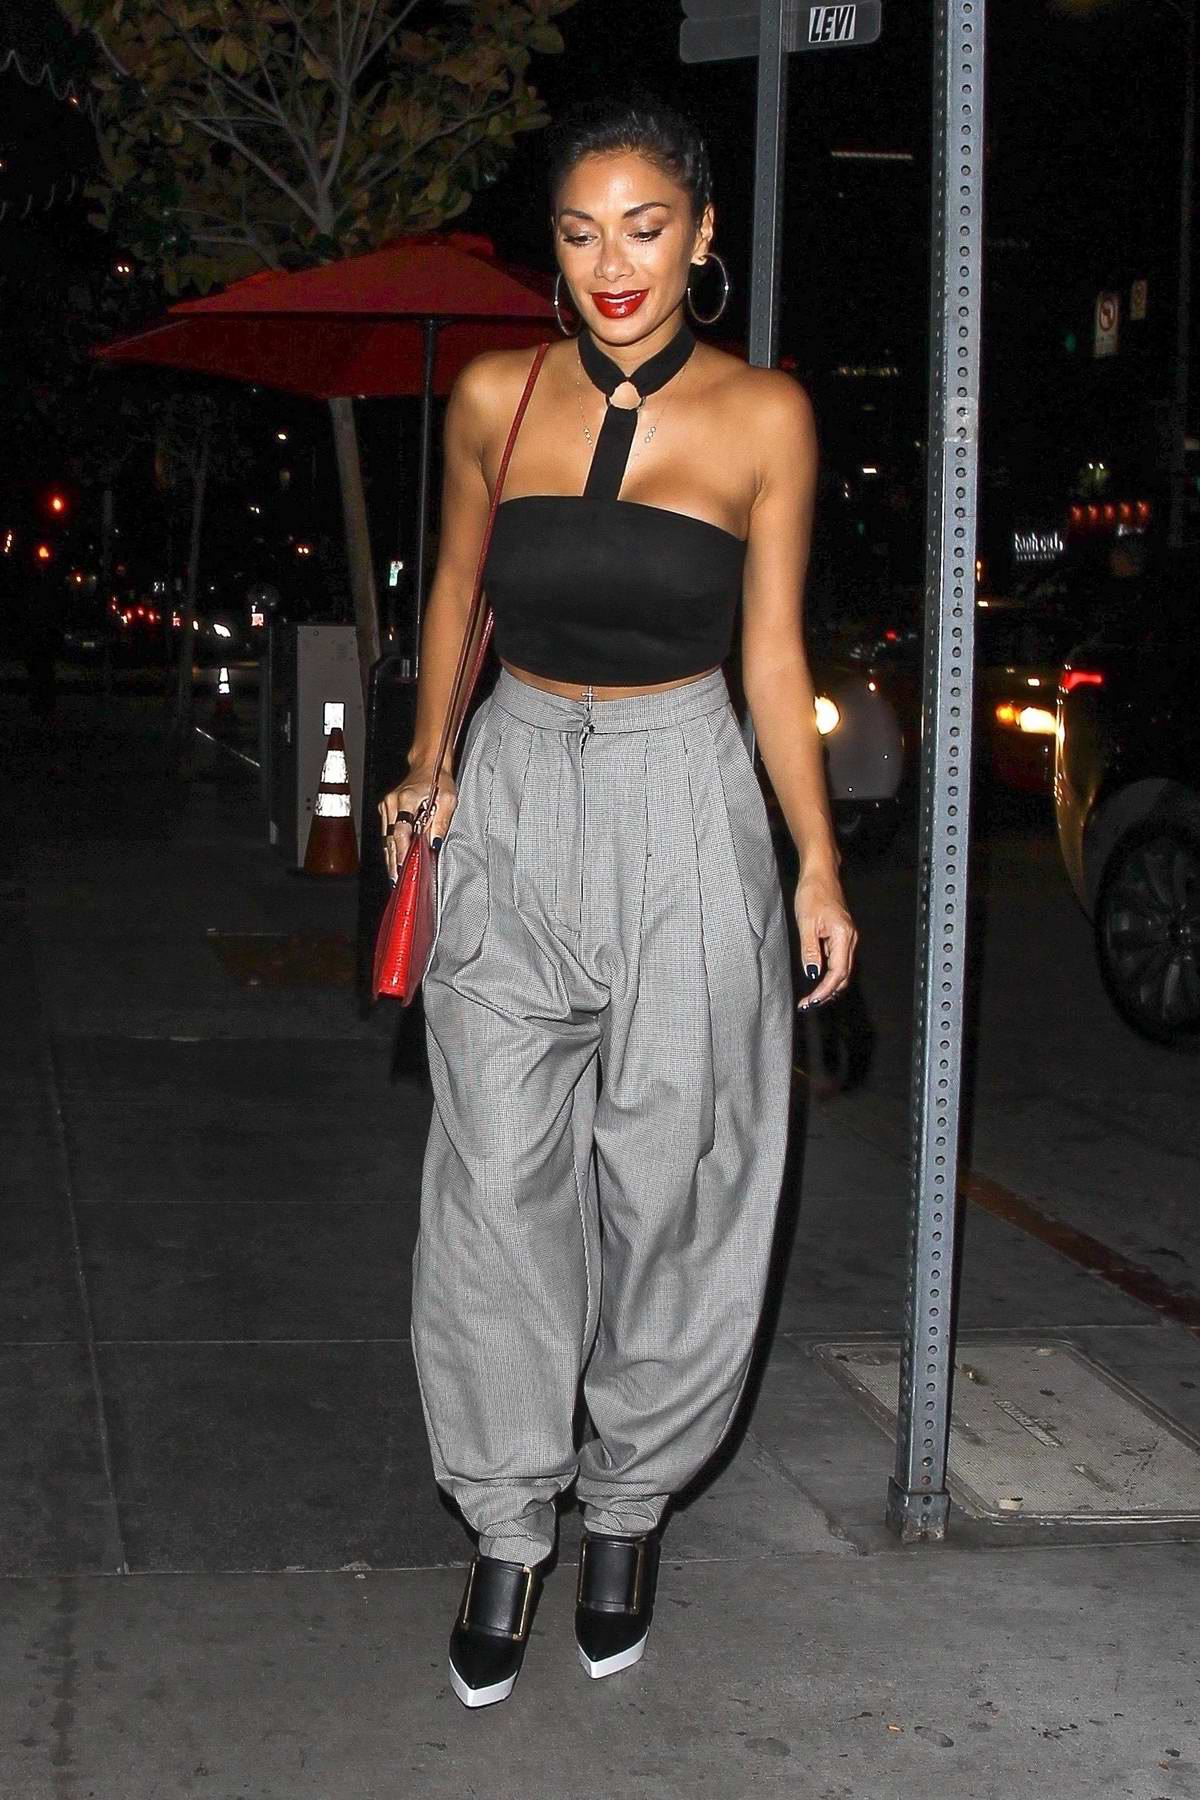 Nicole Scherzinger arrives for dinner at Beauty & Essex in Hollywood, Los Angeles